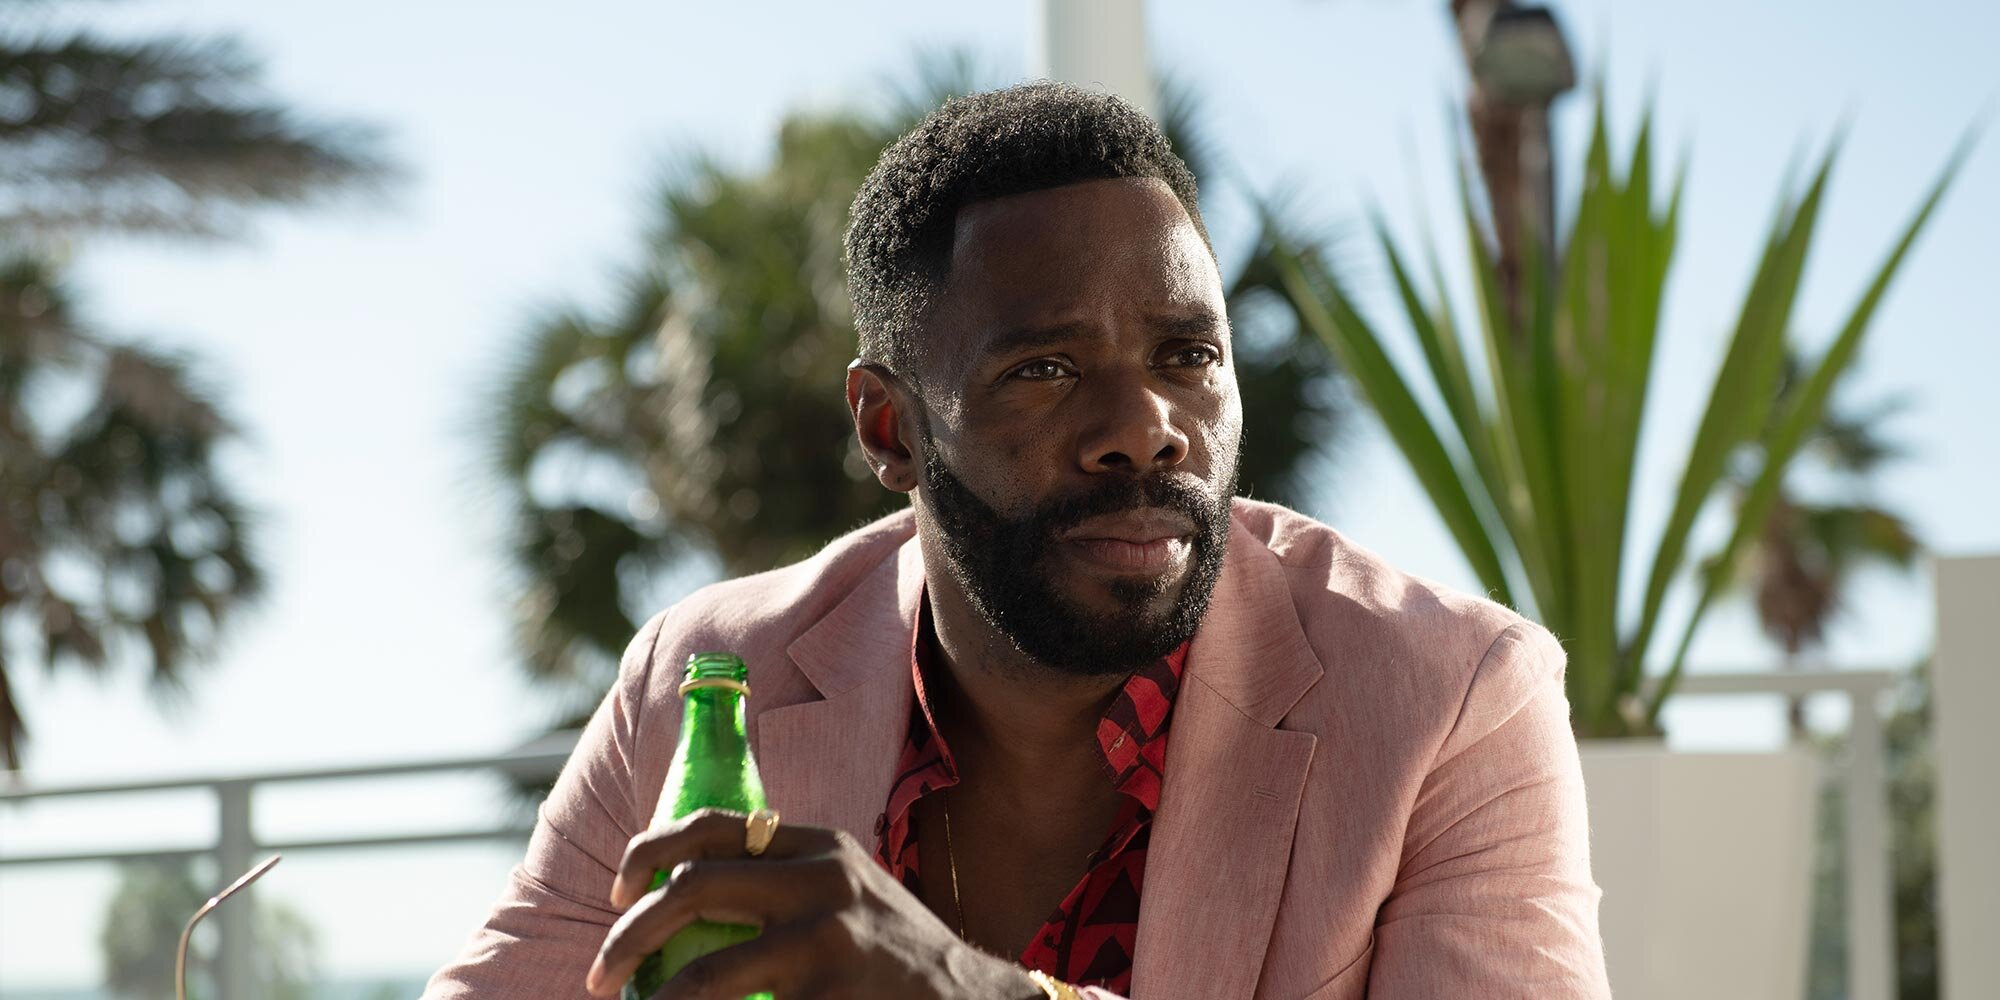 Colman Domingo on 'Fear the Walking Dead' being a 'blessing' and how 'most villains are queer'